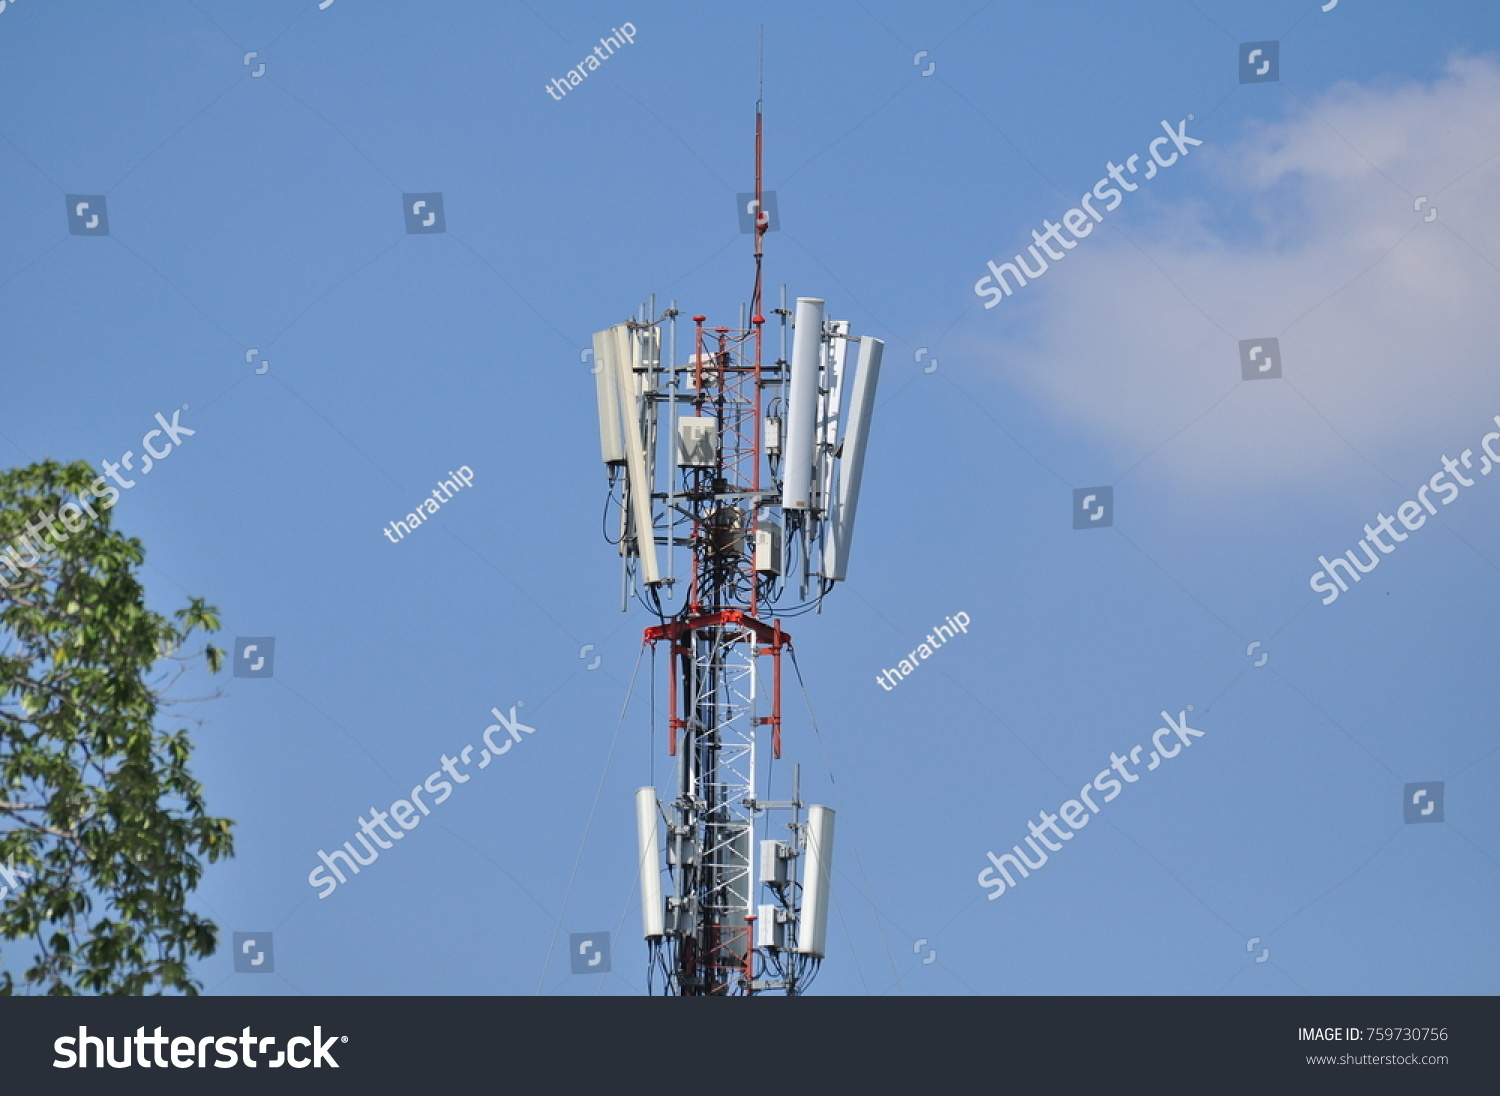 Telecom Towers Wireless Communication Systems Blue Stock Photo ...